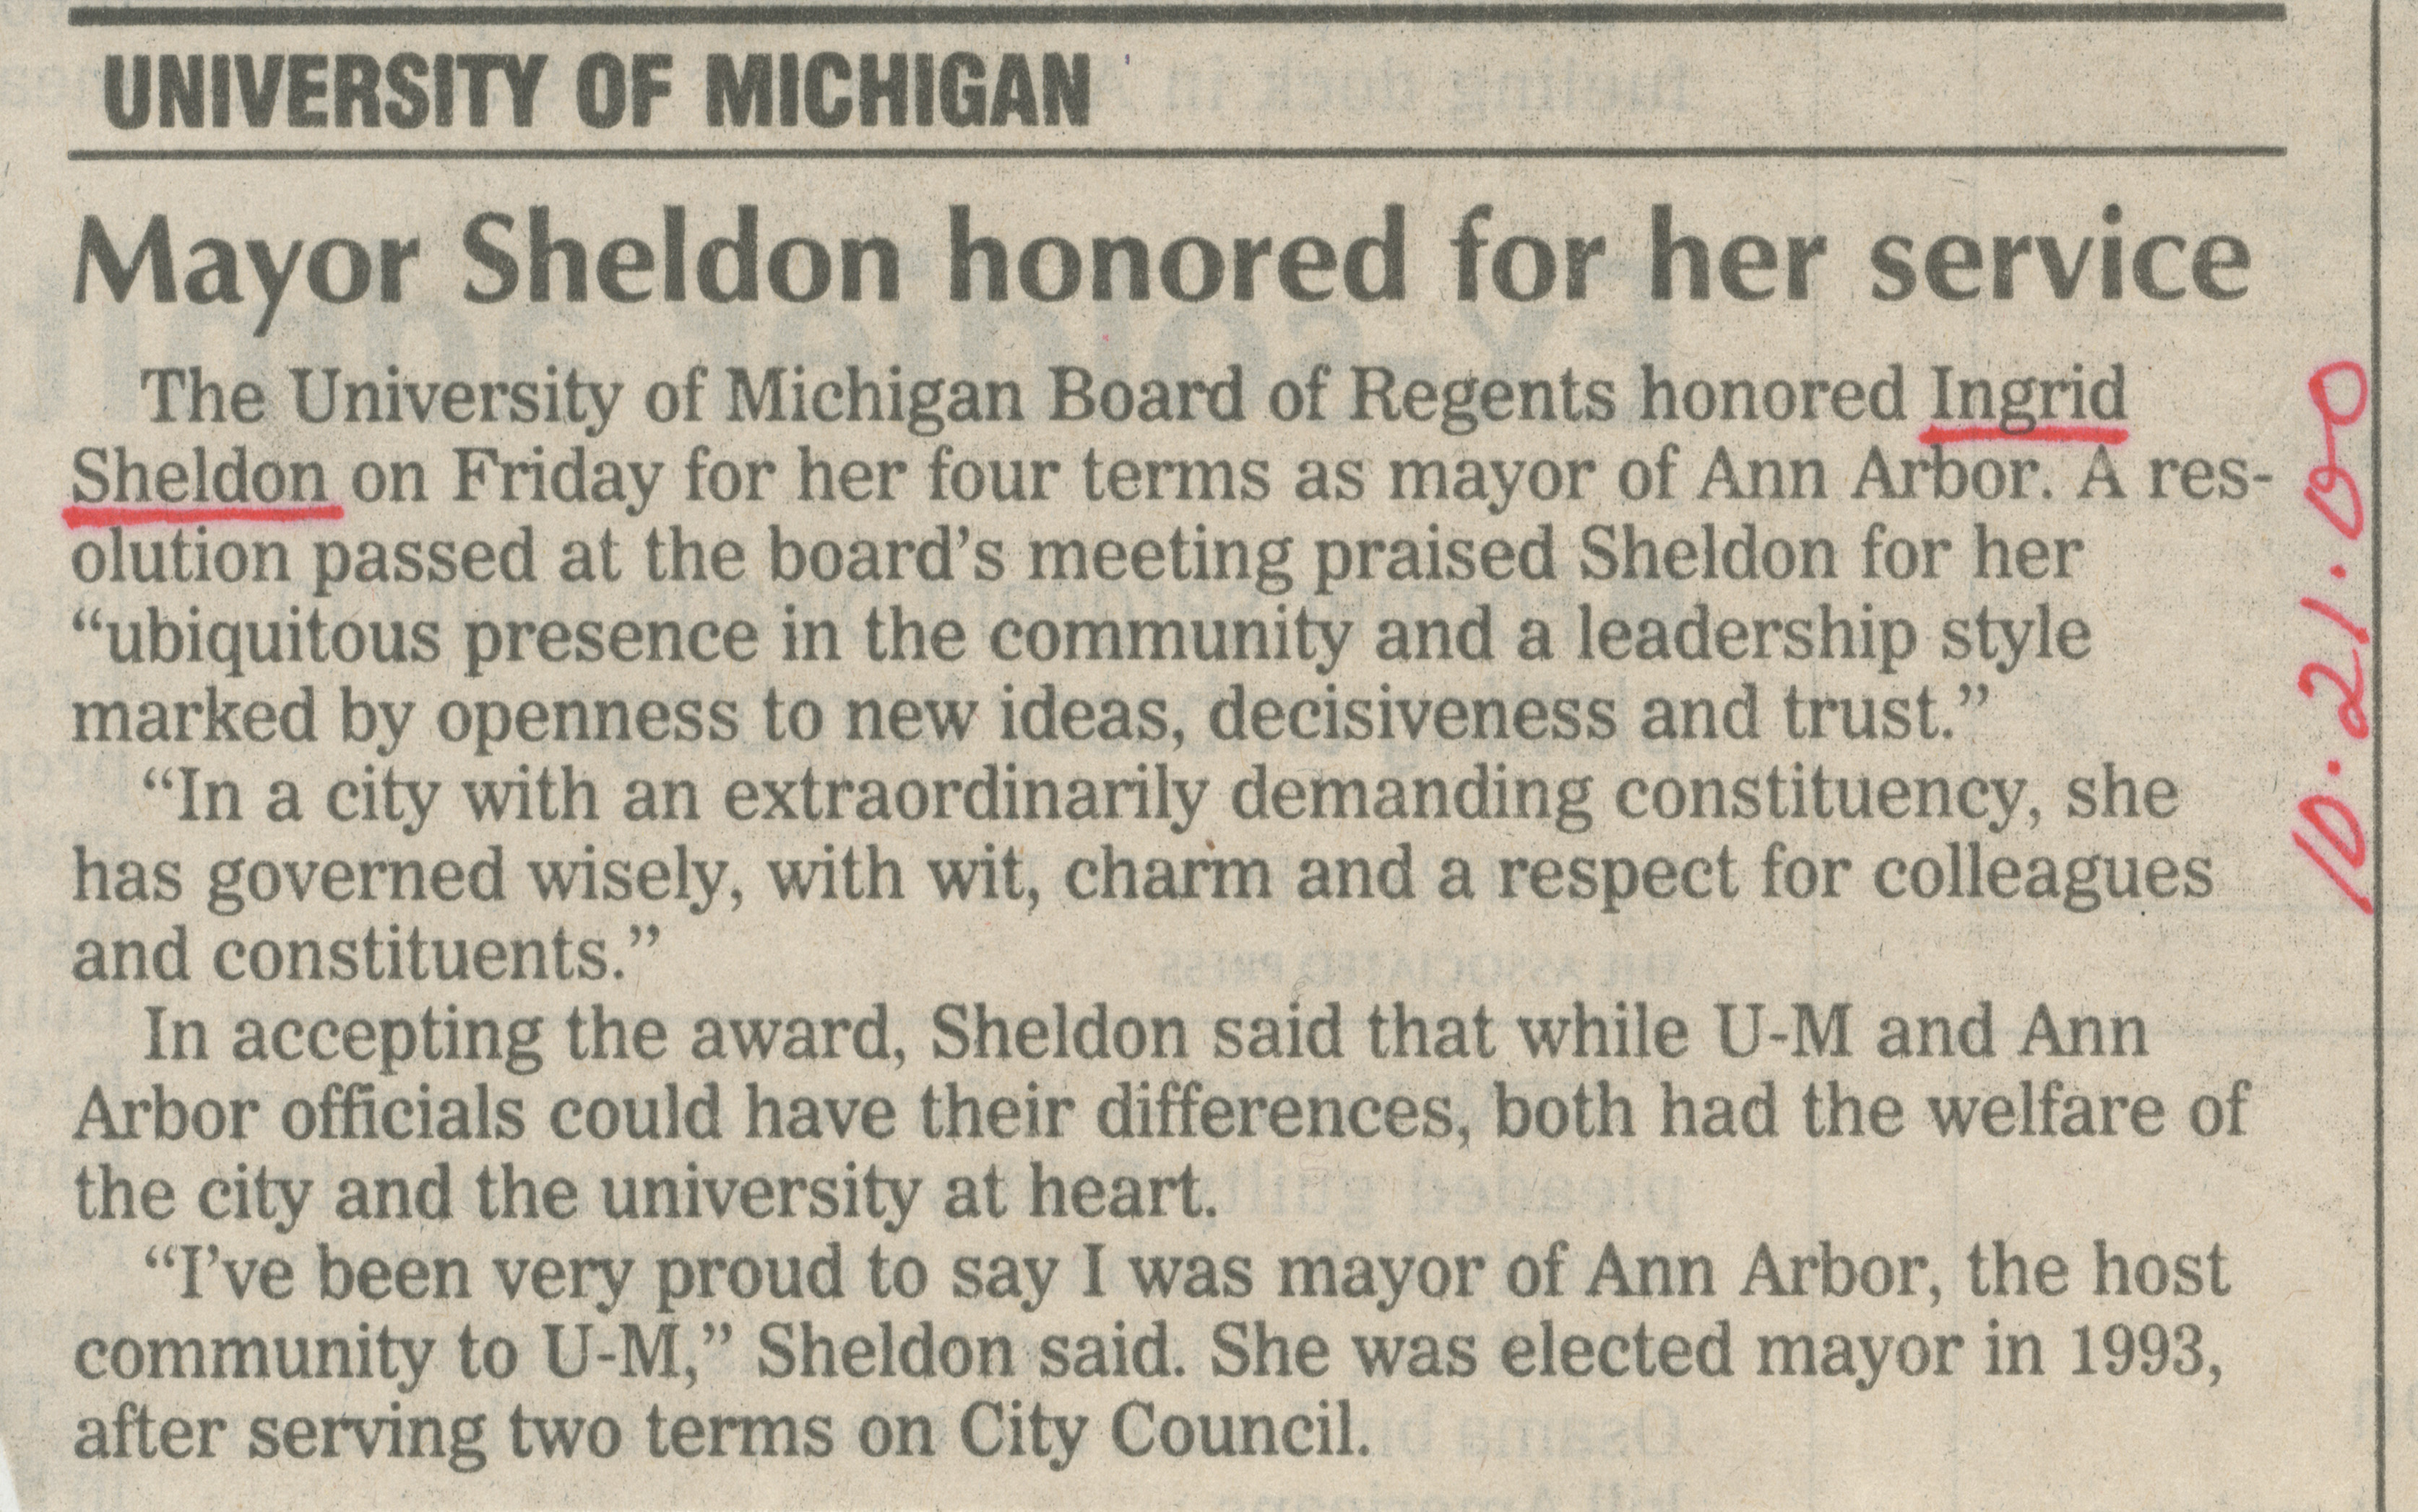 Mayor Sheldon honored for her service image